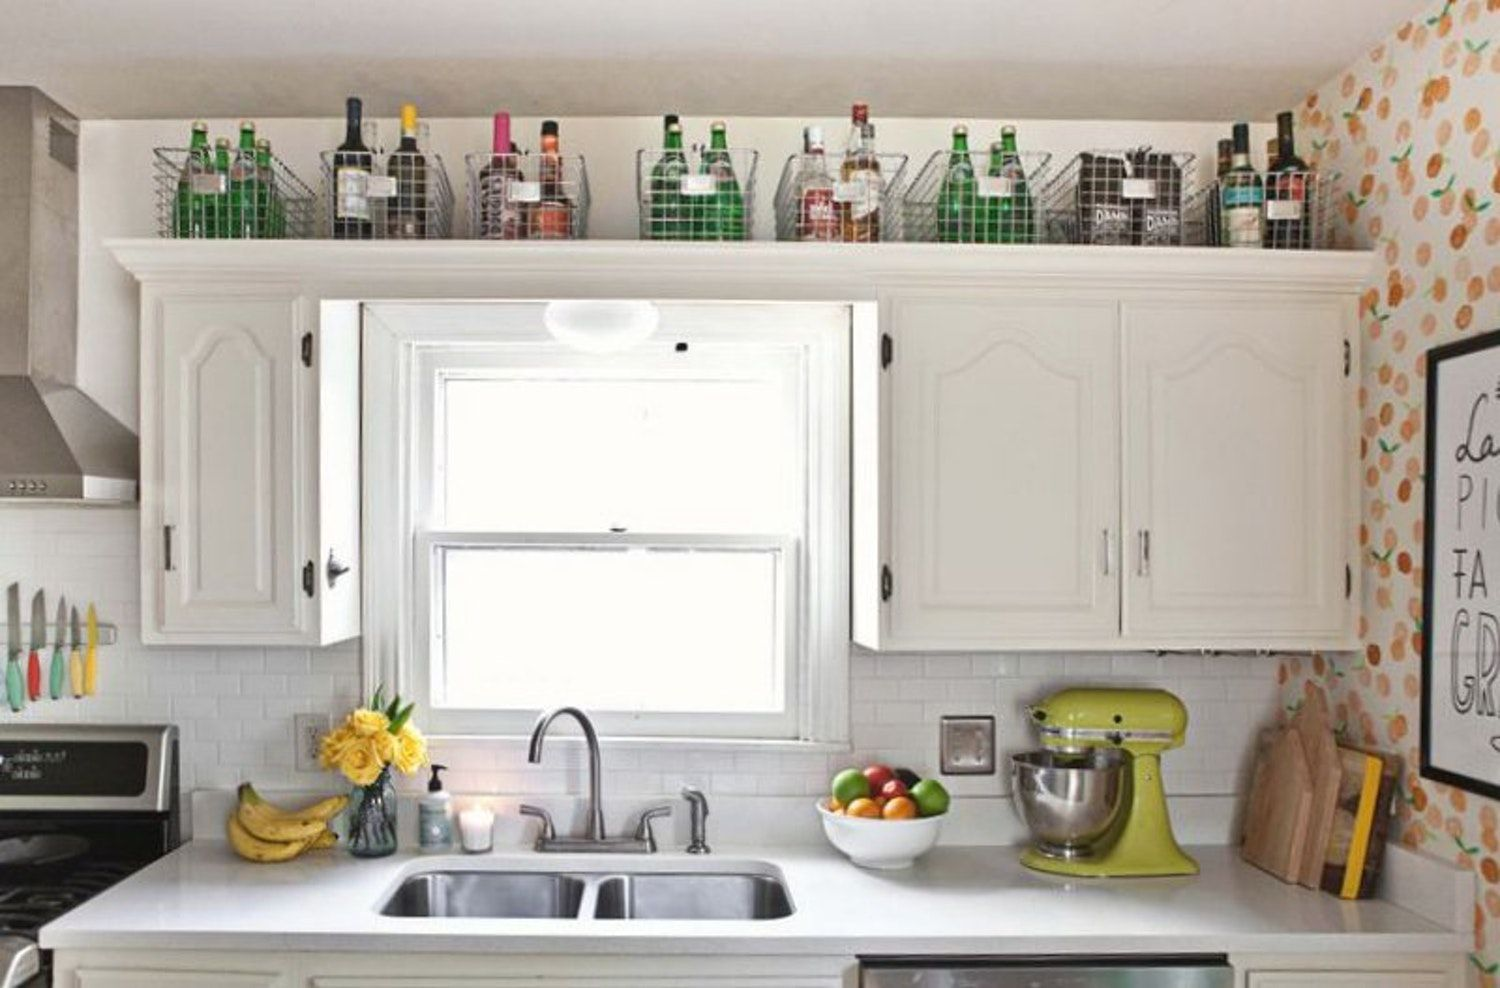 Small space solutions spots to add a little extra storage extra